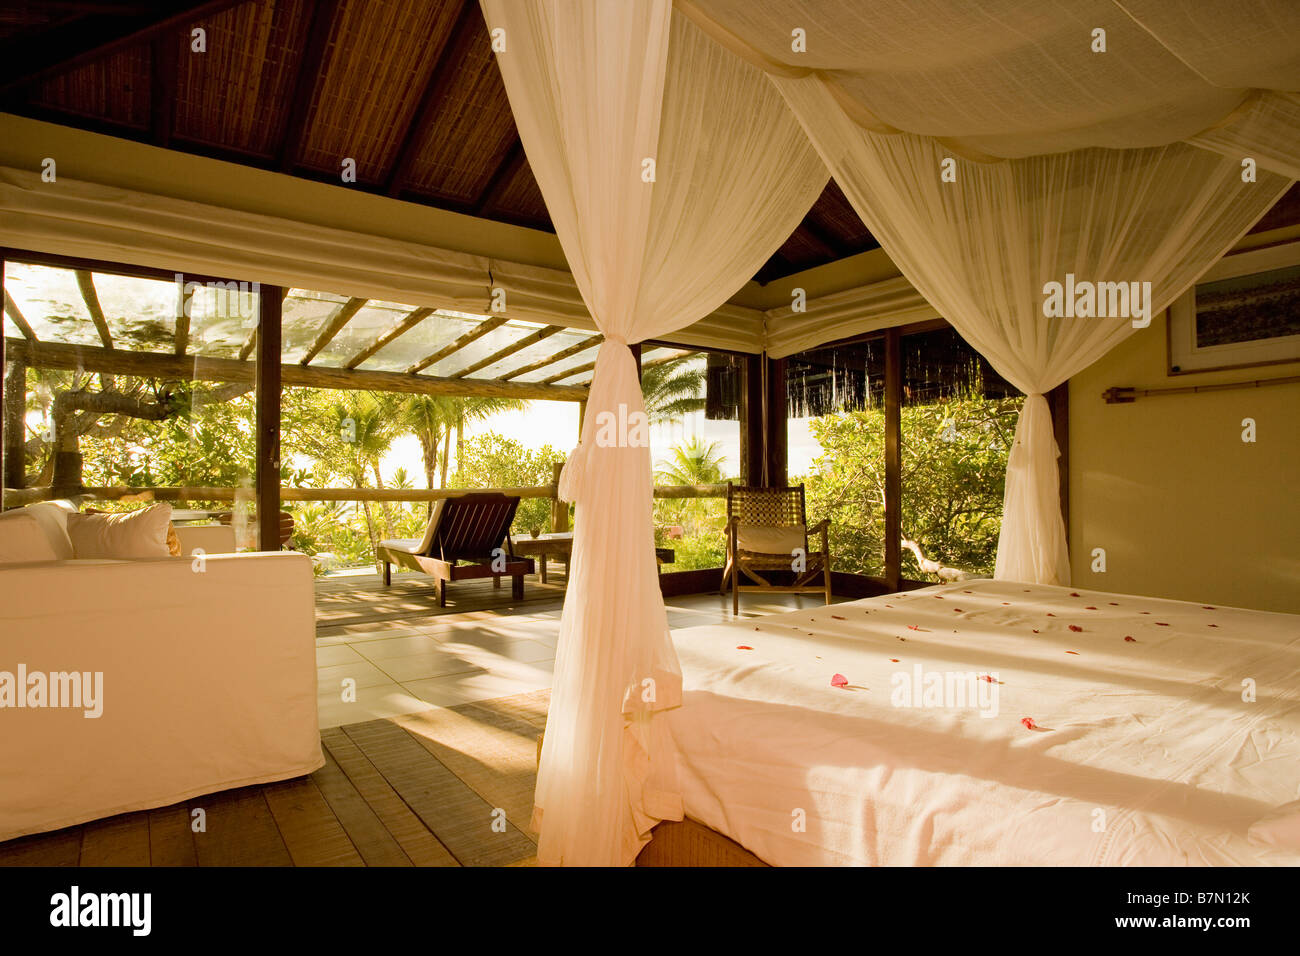 Bedroom ceiling drapes - Stock Photo White Voile Drapes And Bedlinen In Modern Openplan Bedroom With Veranda In Beach House In Brazil